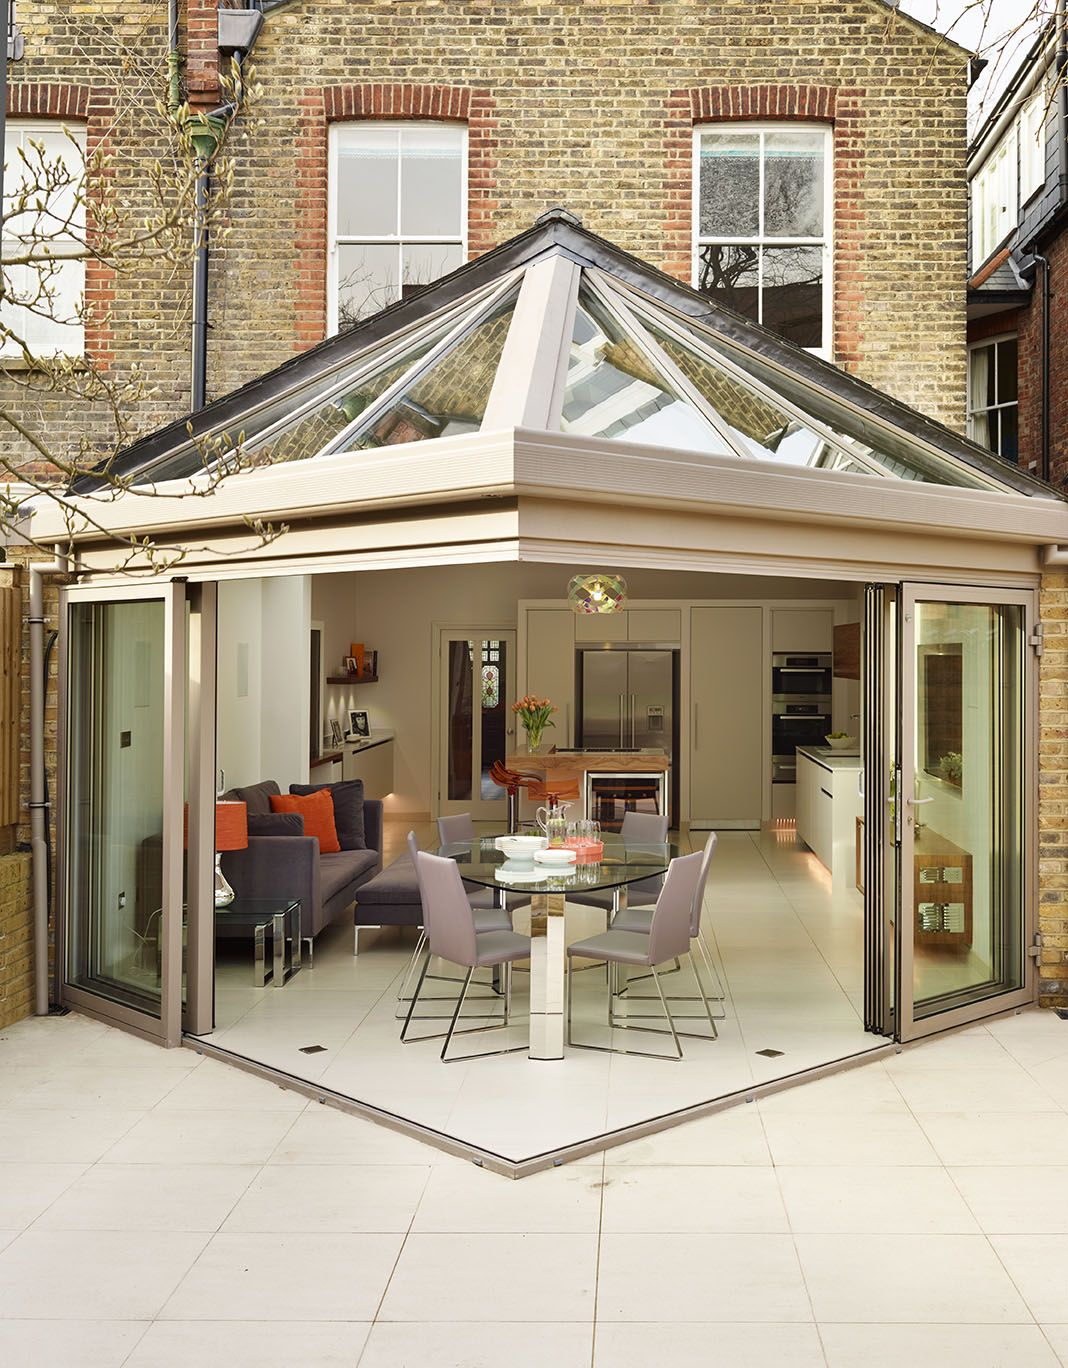 Roundhouse bespoke kitchen contributes to a seamless flow ... on Bespoke Outdoor Living id=21631